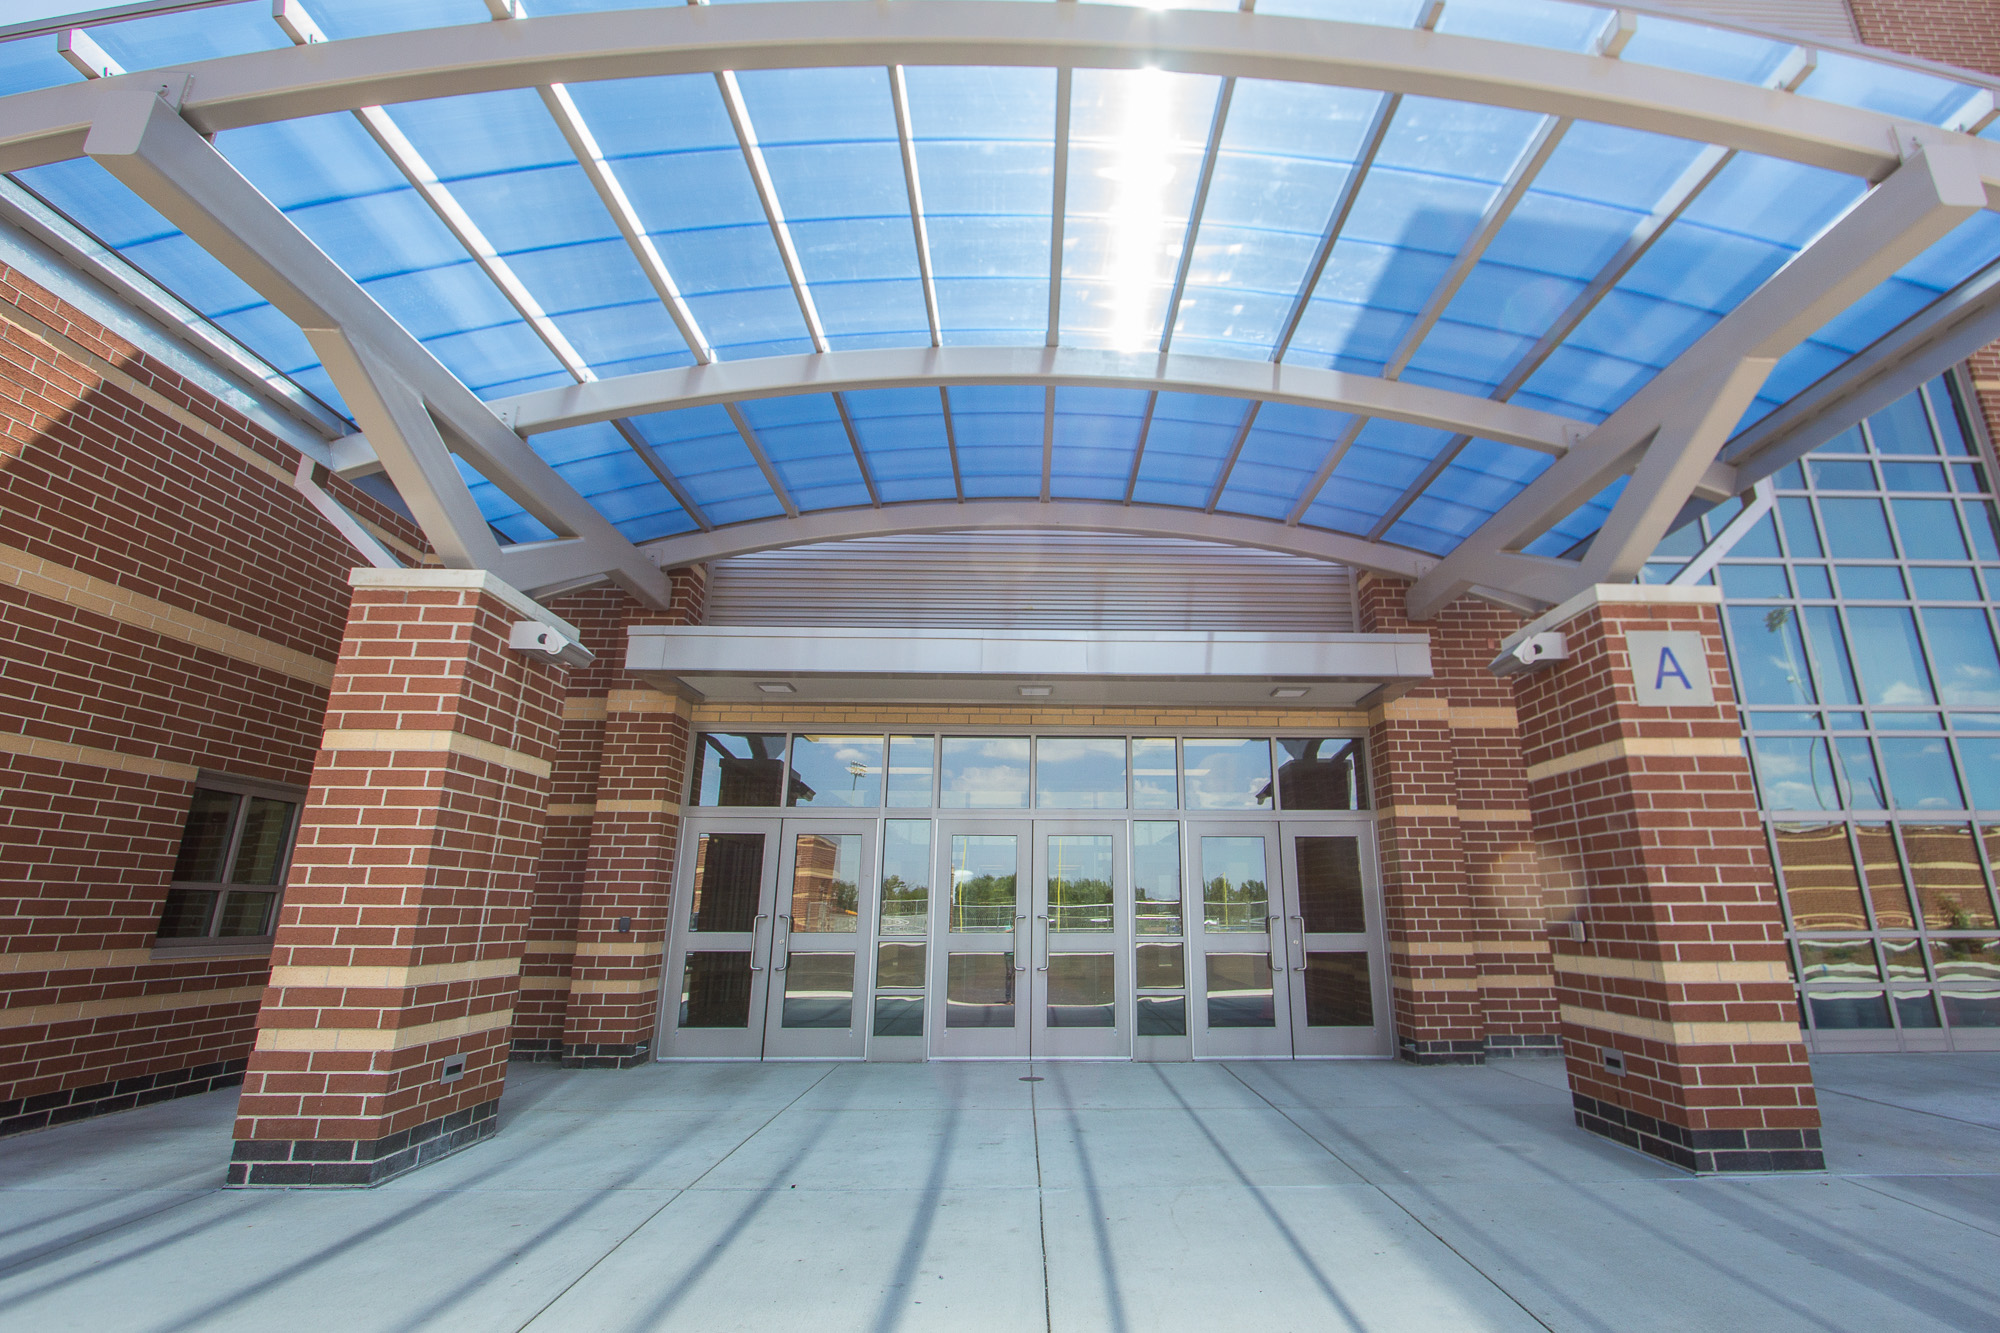 Check out the NEW Lake Central High School PHOTOS